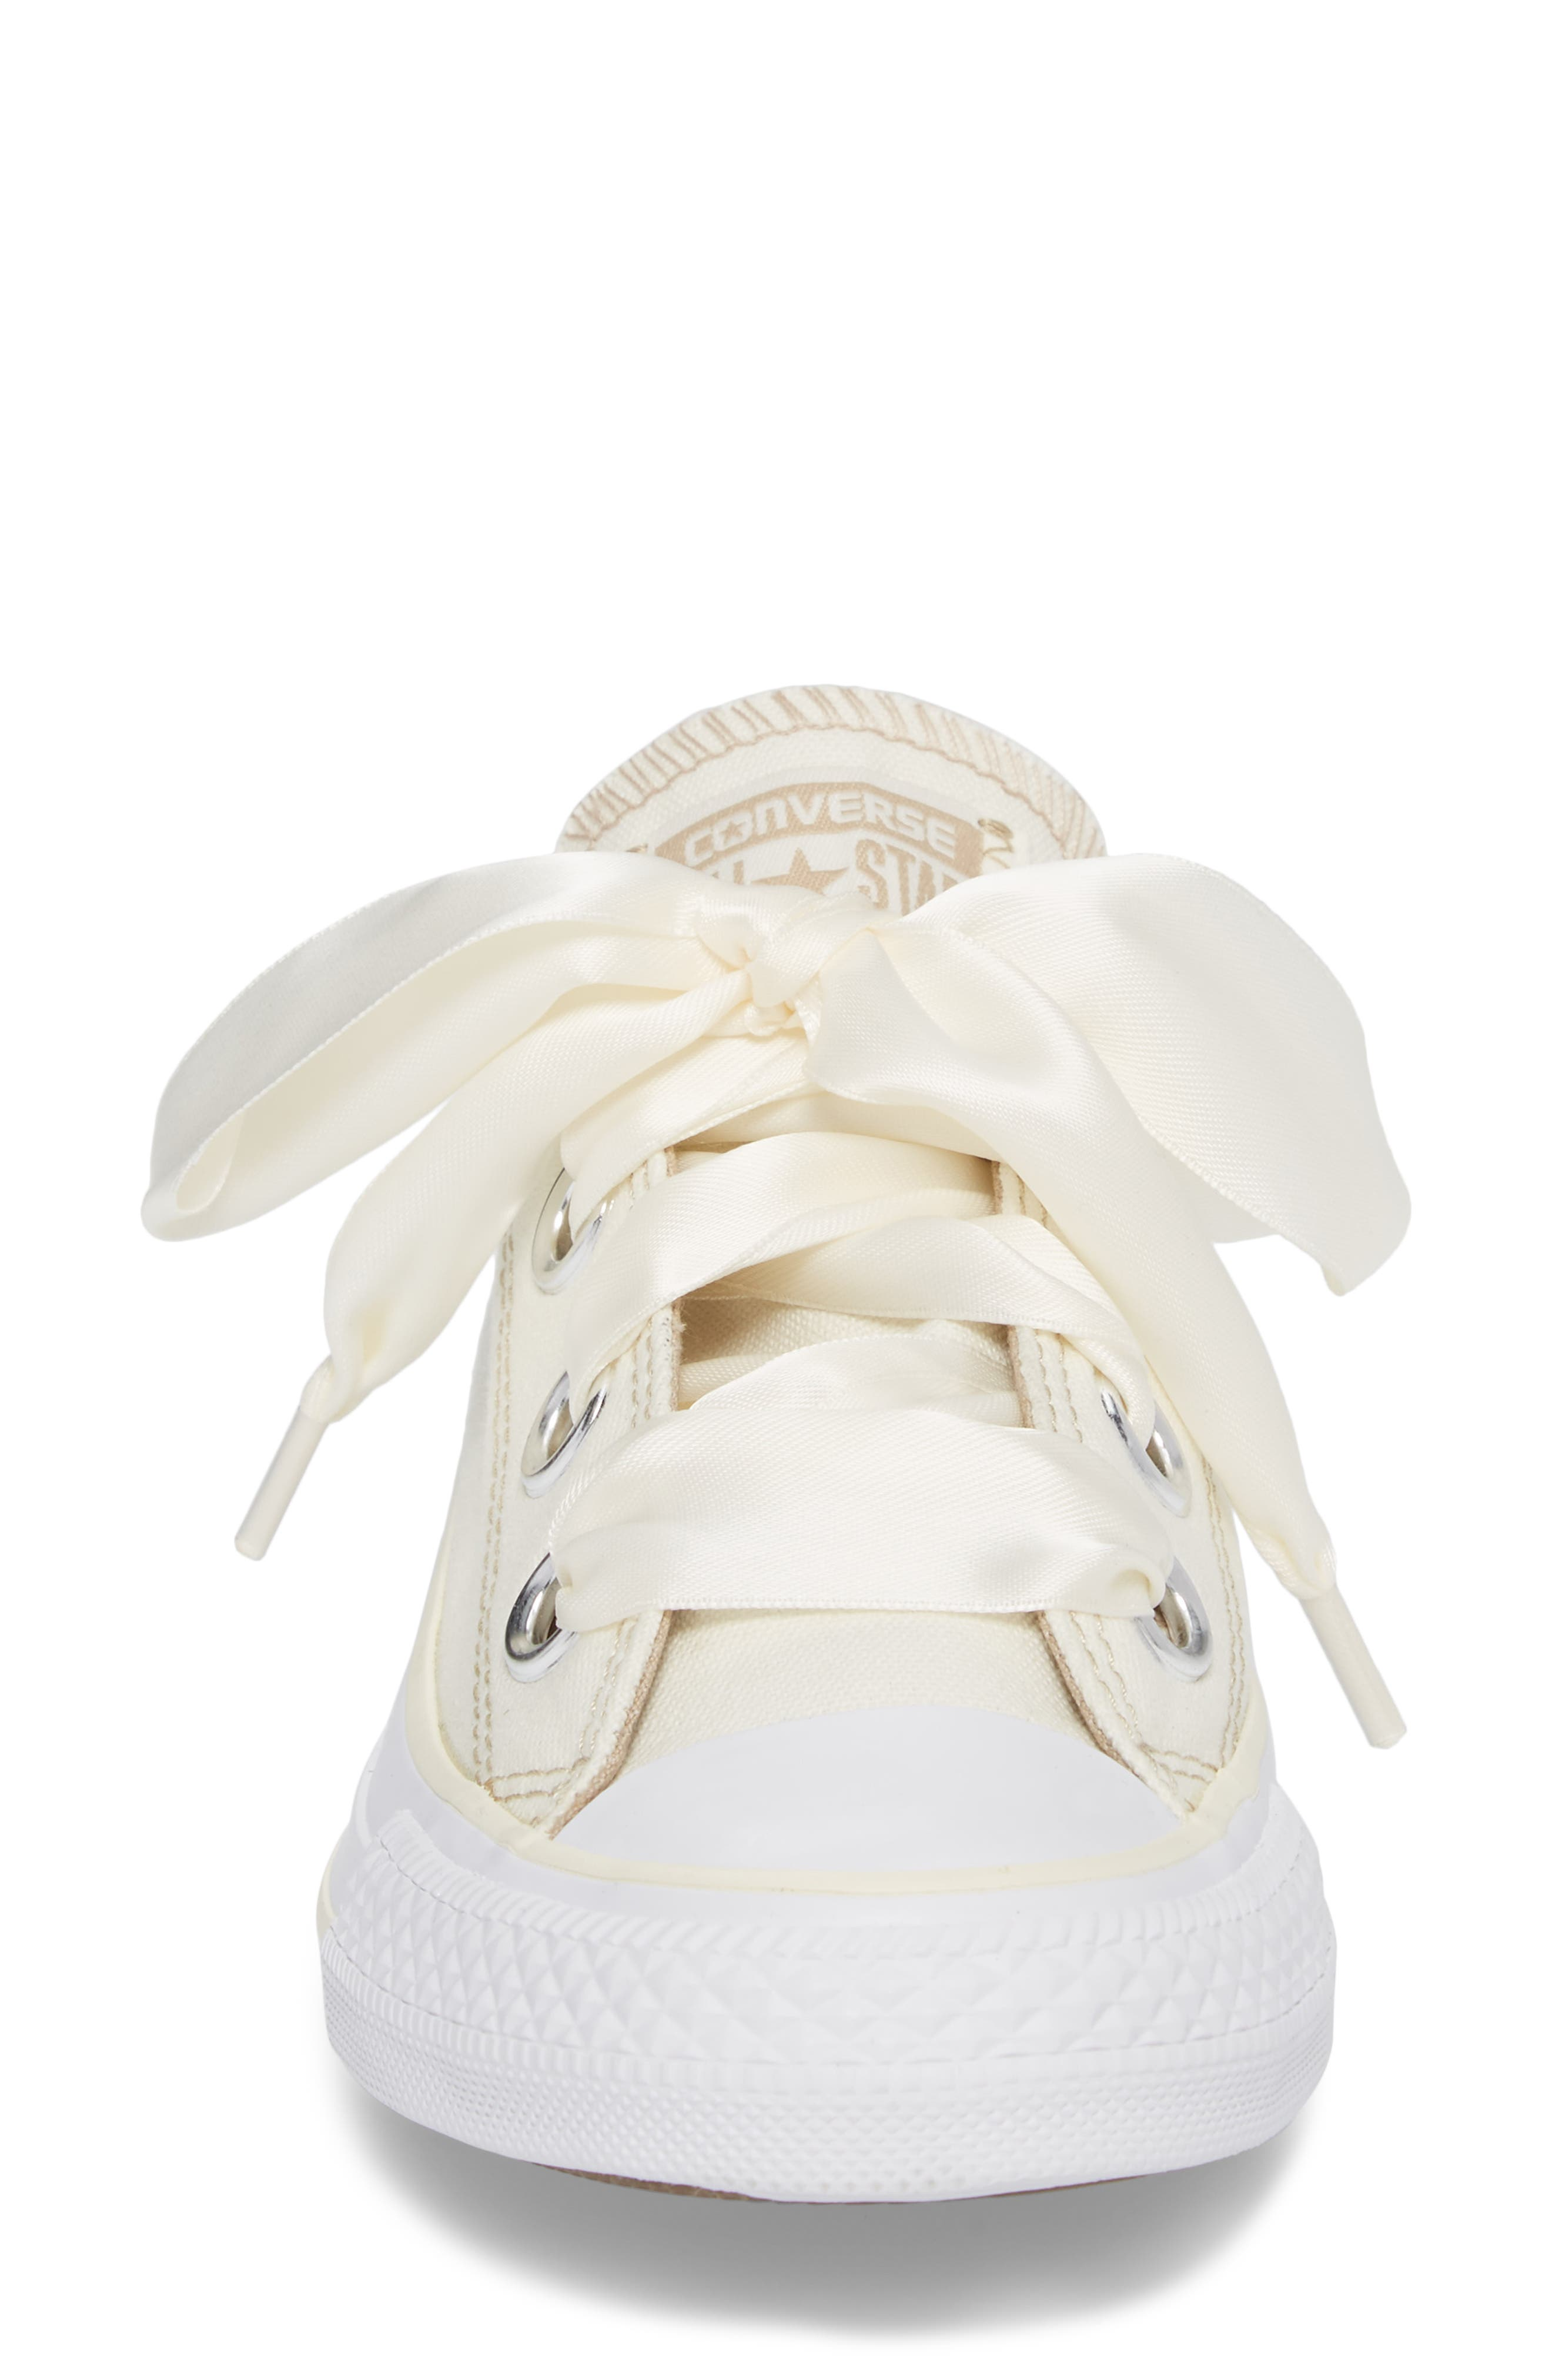 Chuck Taylor<sup>®</sup> All Star<sup>®</sup> Big Eyelet Ox Sneaker,                             Alternate thumbnail 14, color,